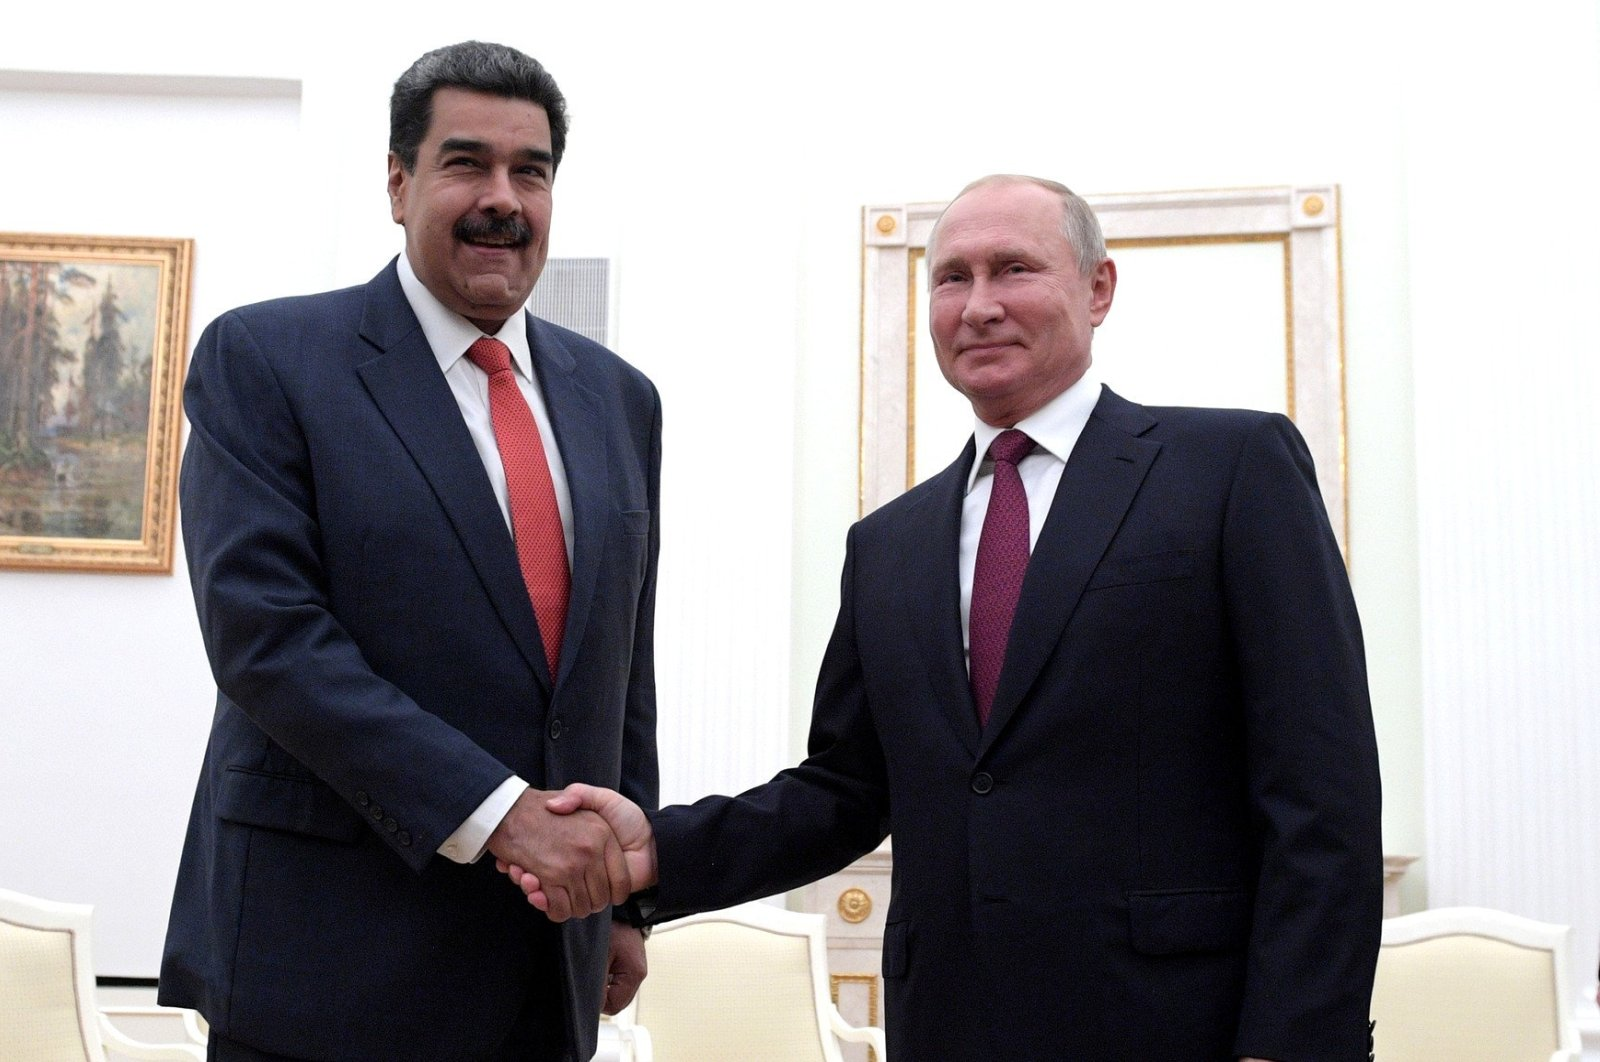 Venezuelan President Nicolas Maduro (L) and his Russian counterpart Vladimir Putin shake hands as they meet in Moscow, Russia, Sept. 27, 2019